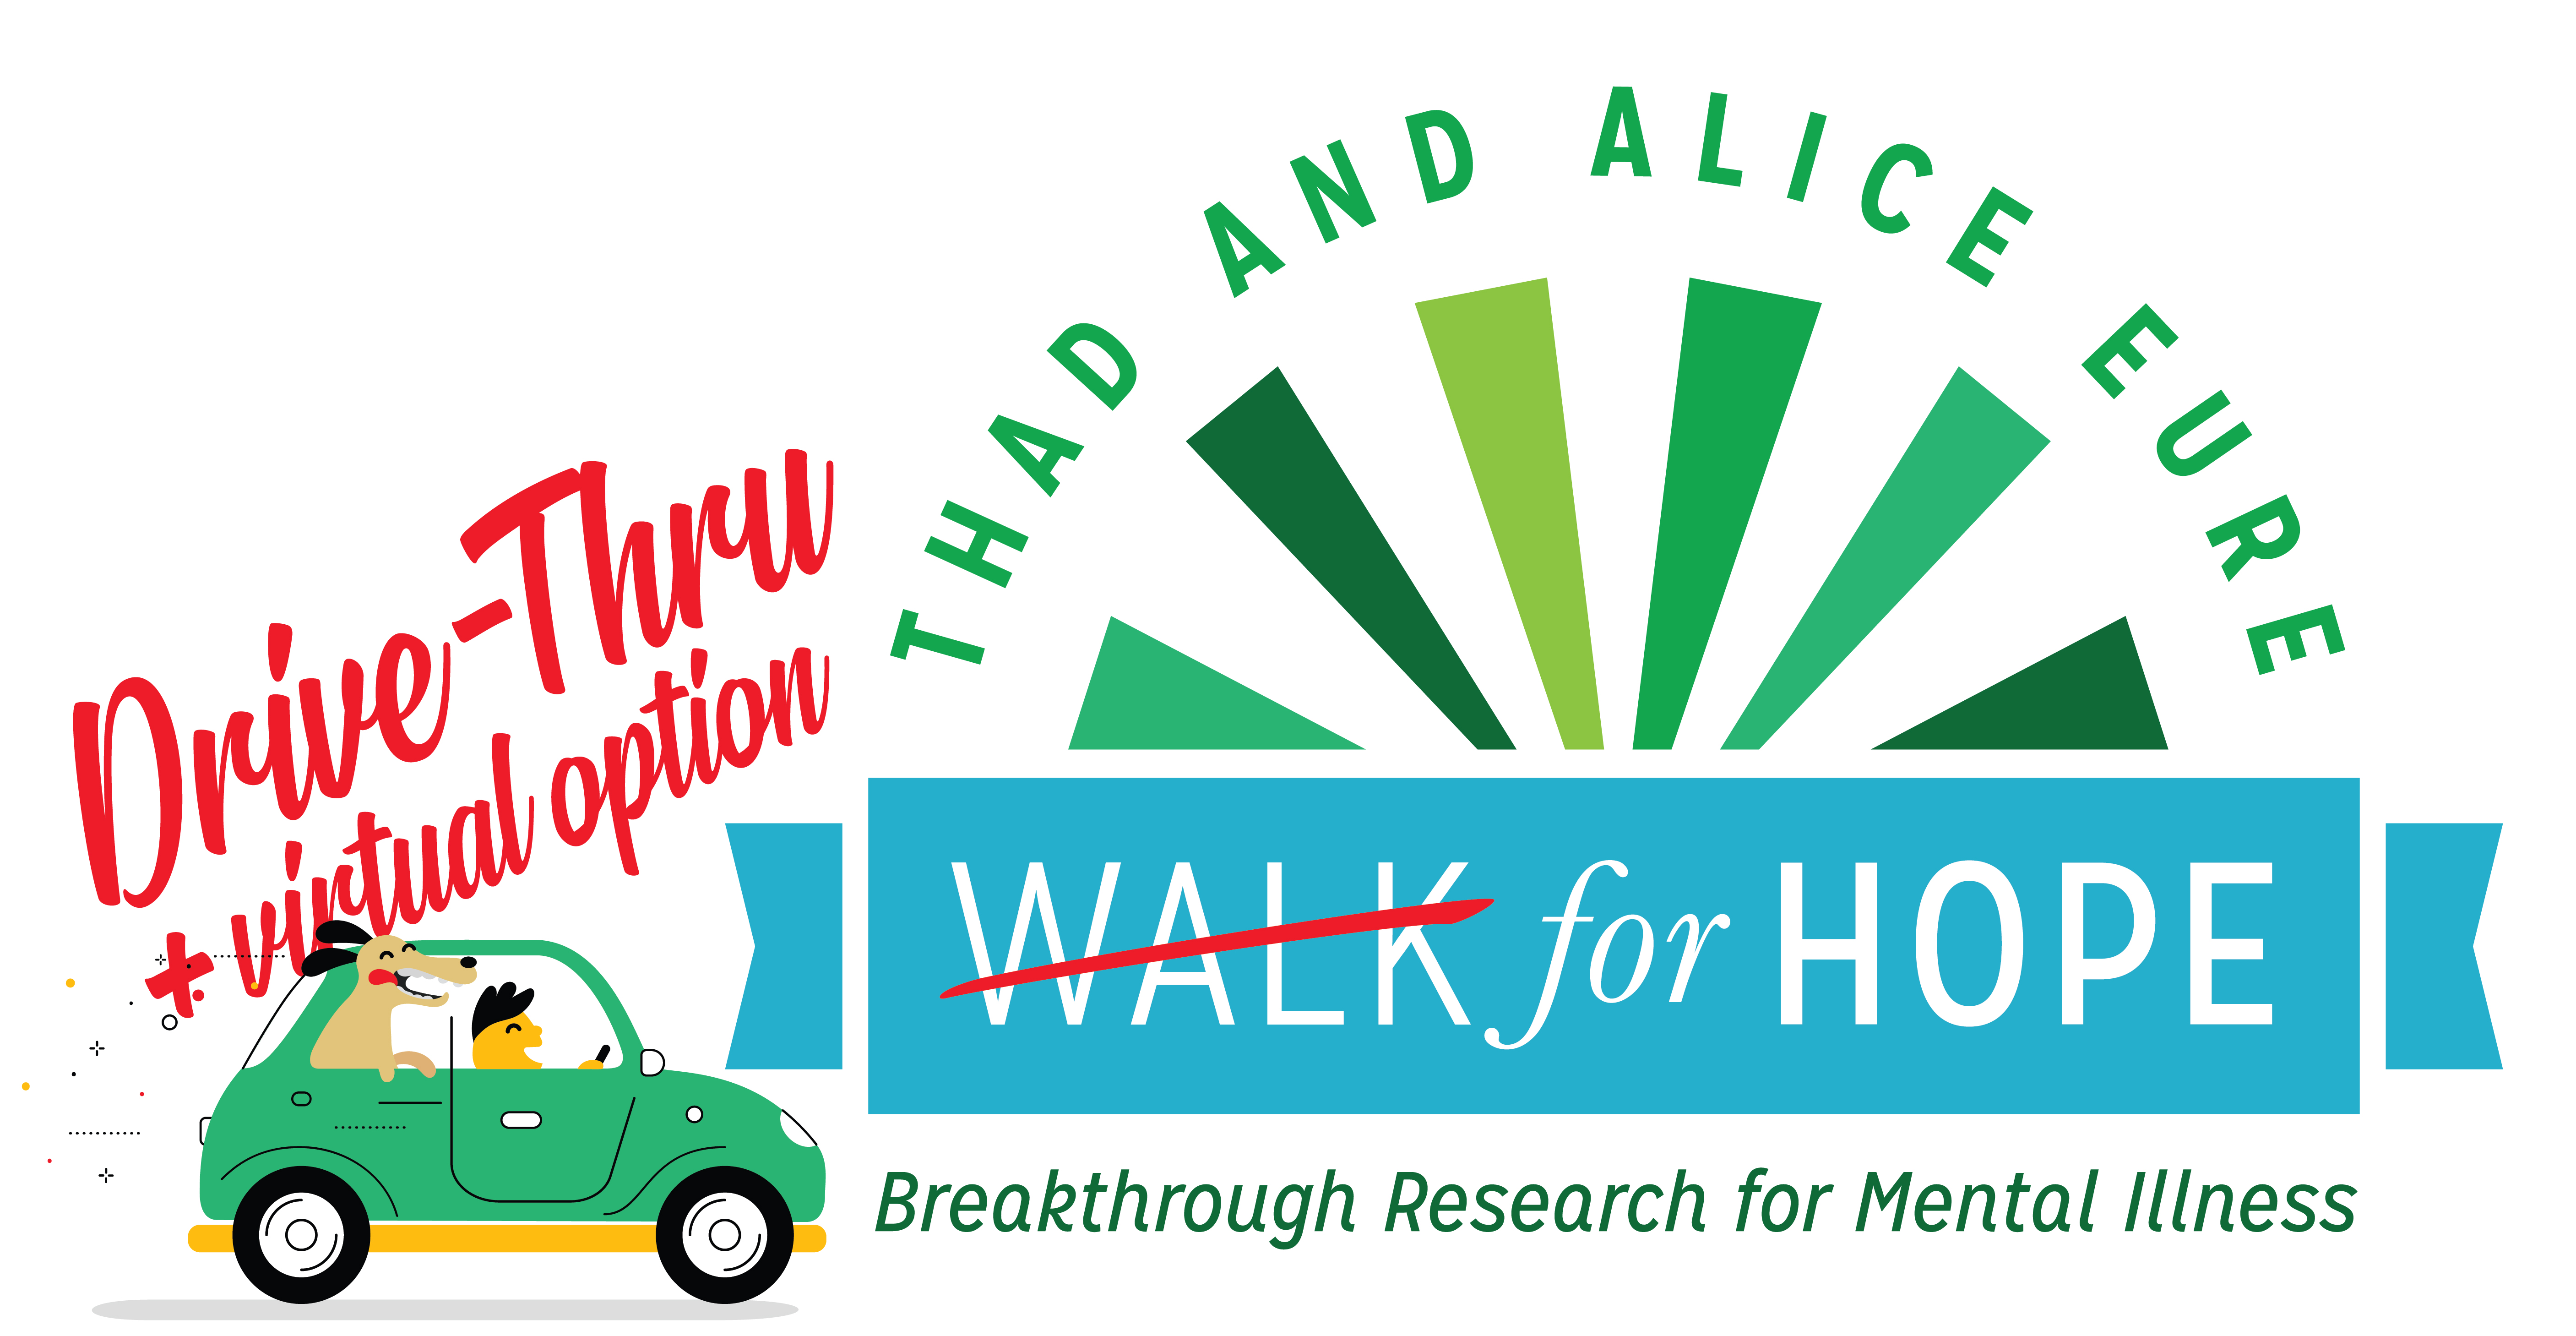 33rd Annual Thad & Alice Eure Walk for Hope & Virtual Option